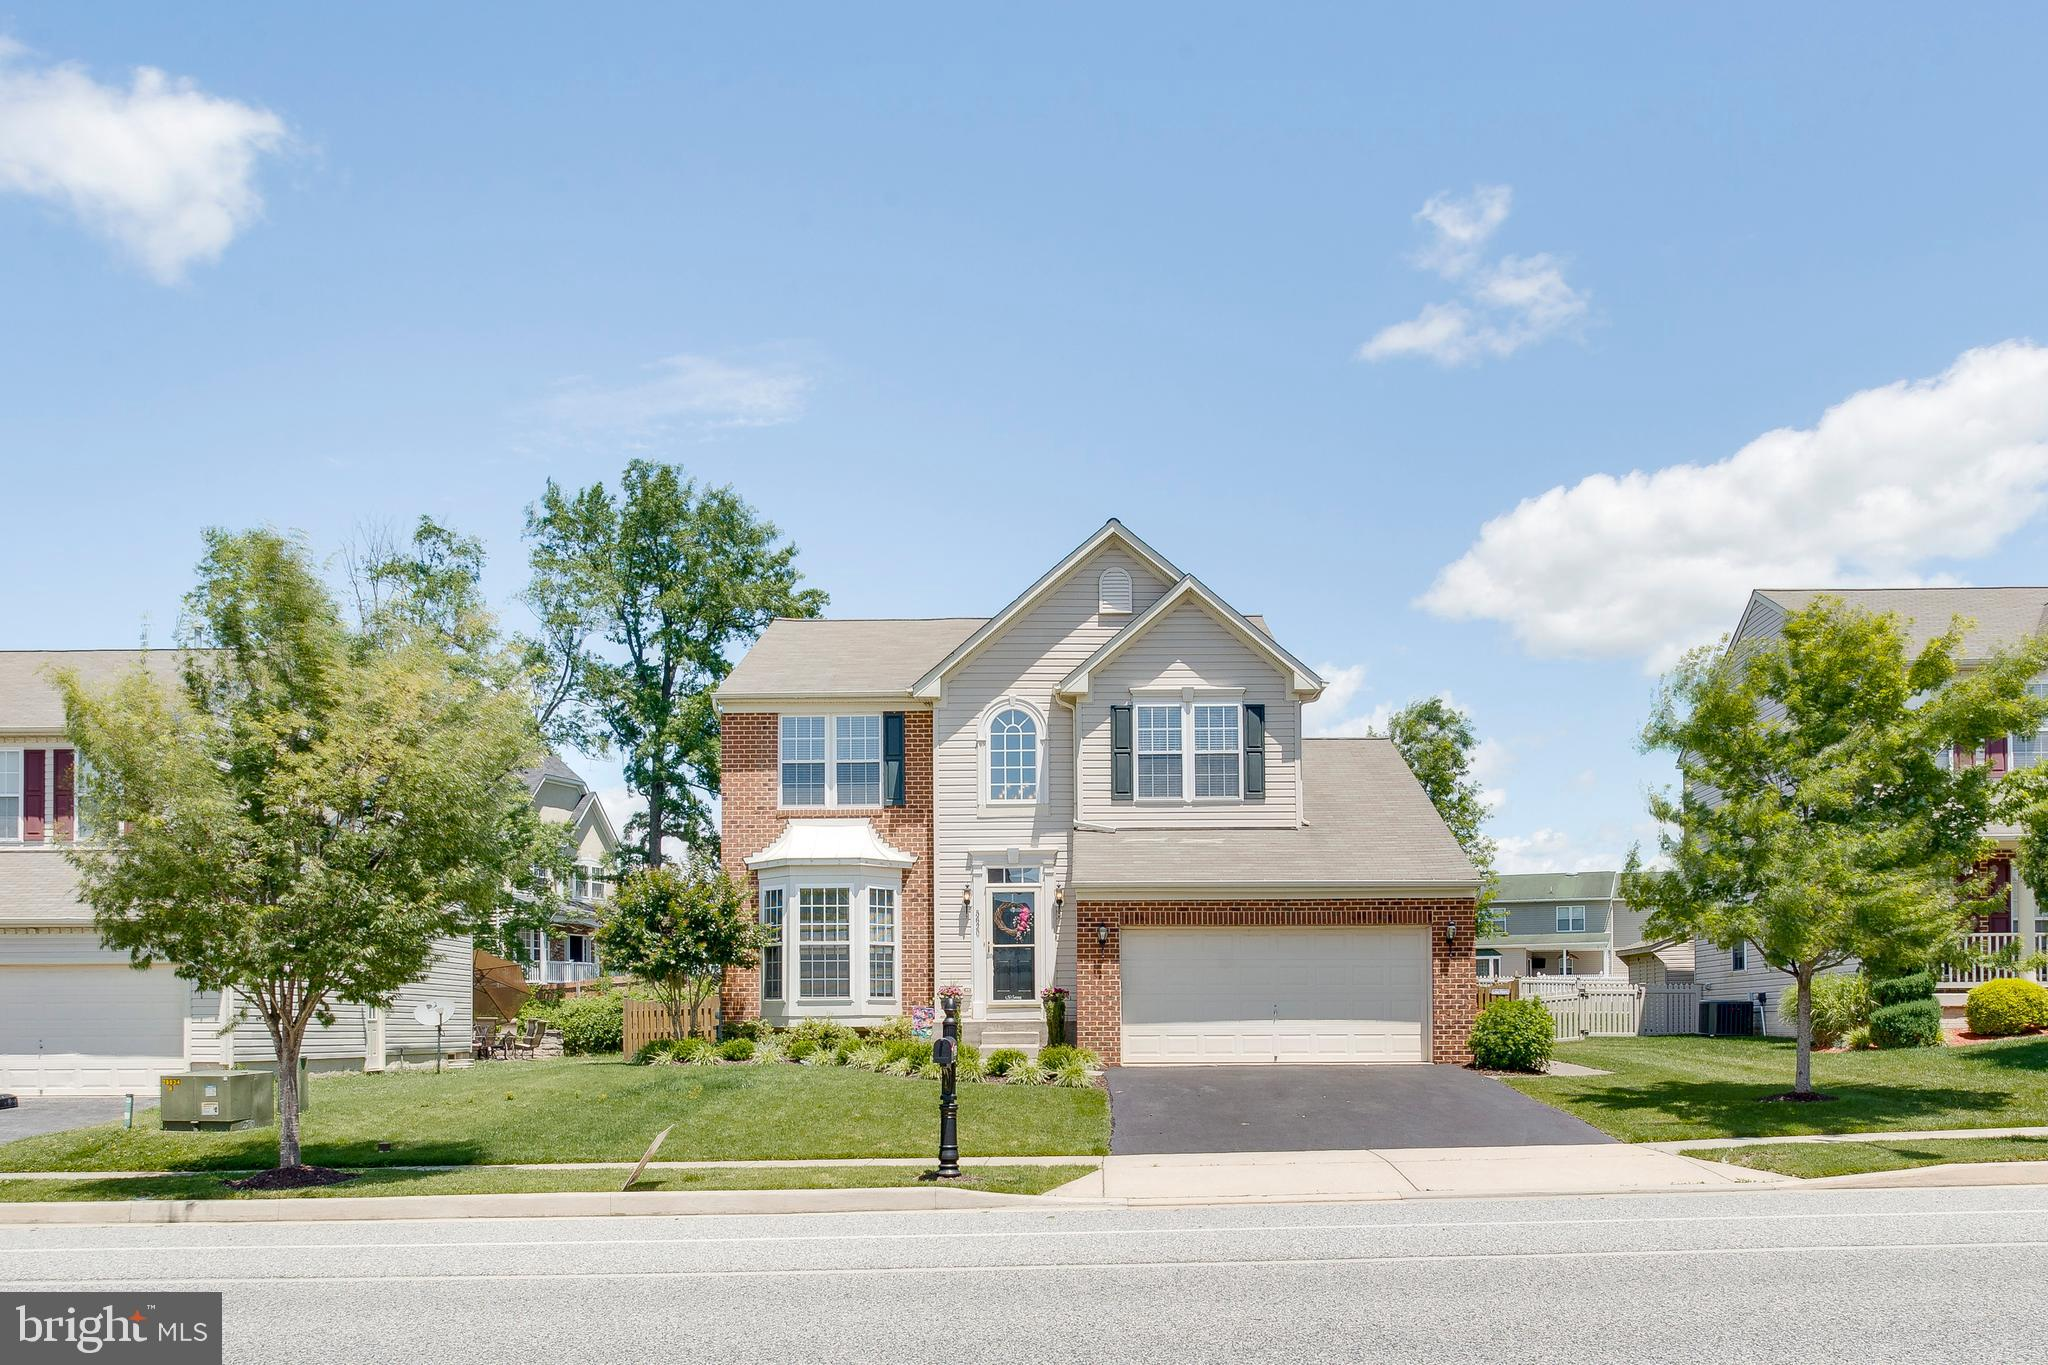 5620 NEW FORGE ROAD, WHITE MARSH, MD 21162